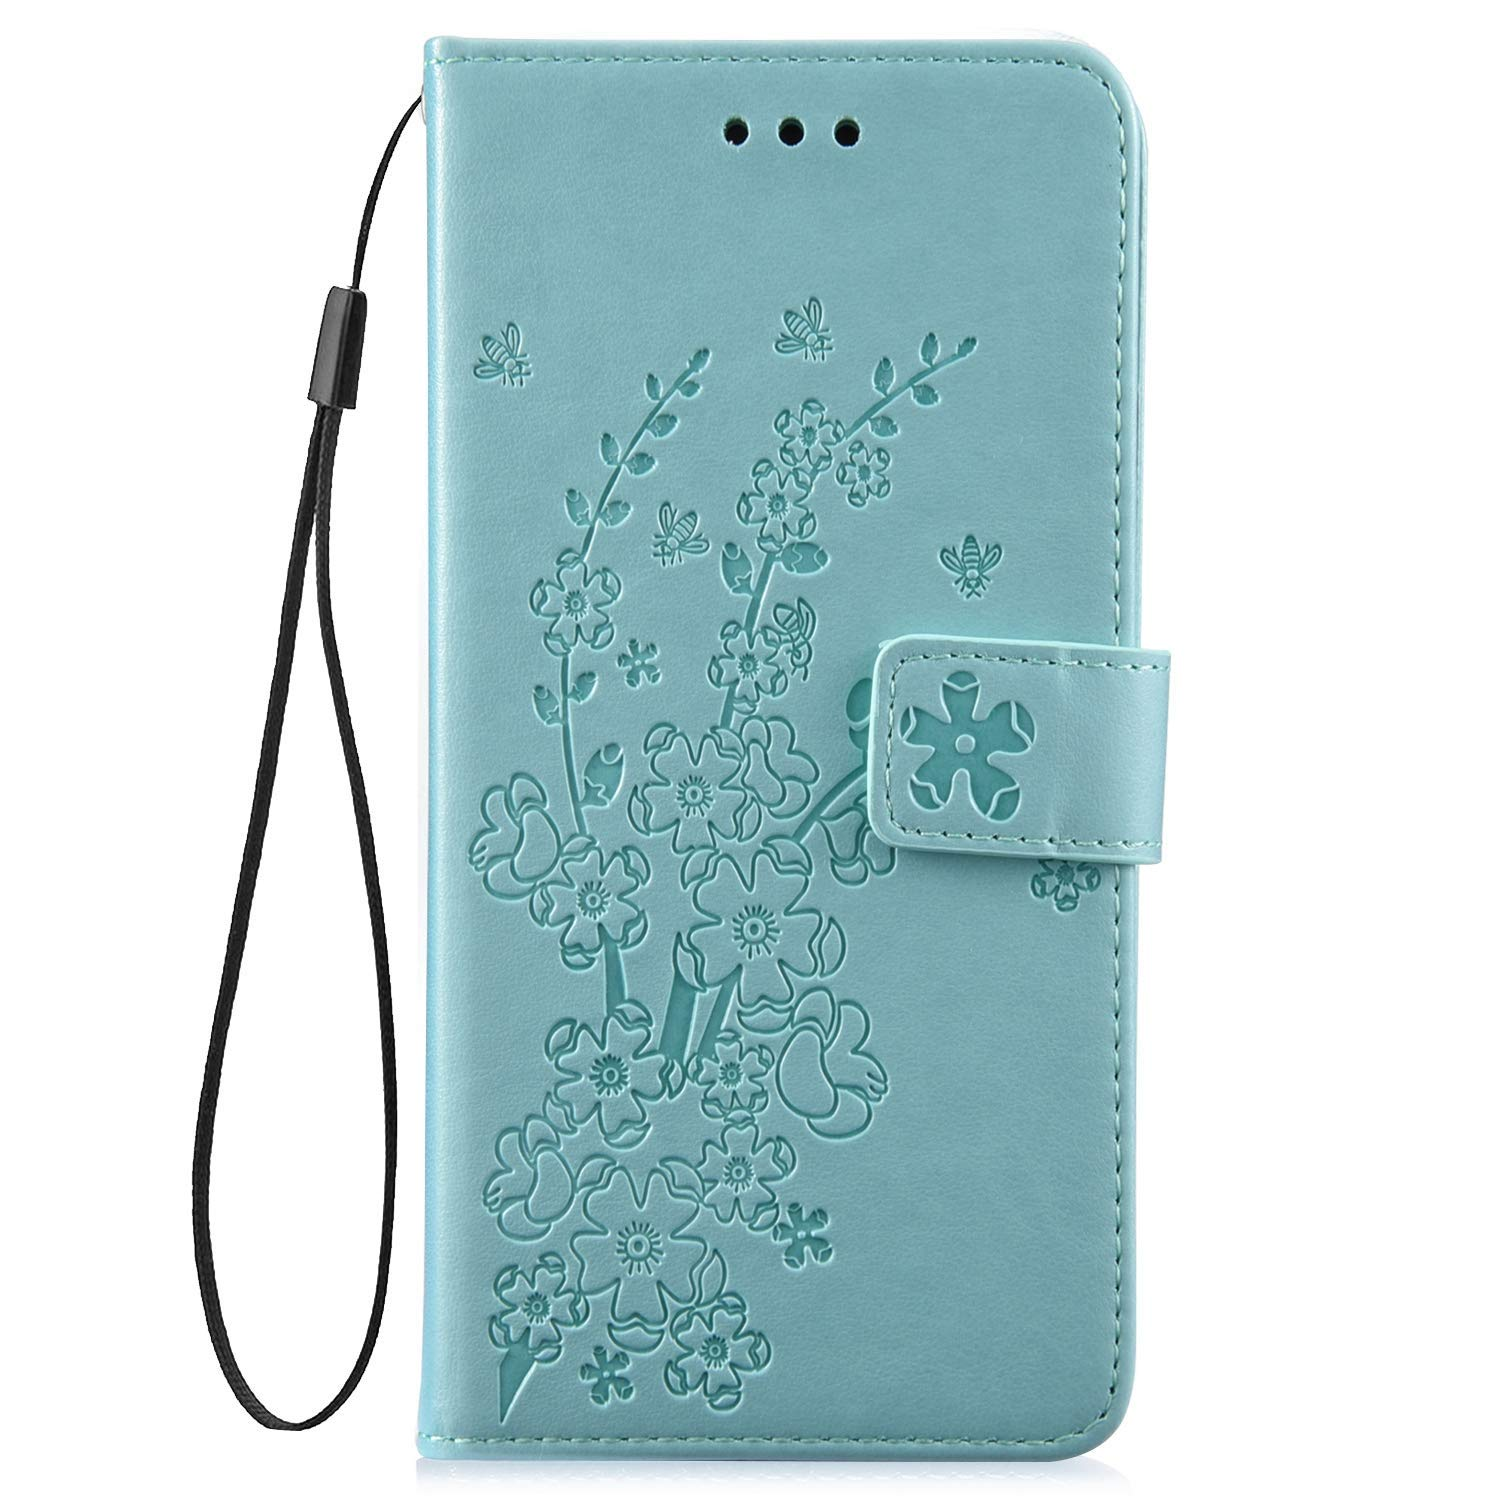 Saceebe Compatible avec iPhone 7 Plus//iPhone 8 Plus Coque Pochette Portefeuille Cuir Housse Fleurs de Cerisier Motif Magn/étique /Étui /à Rabat Wallet Flip Cover Support Antichoc Carte Fente,Or Rose